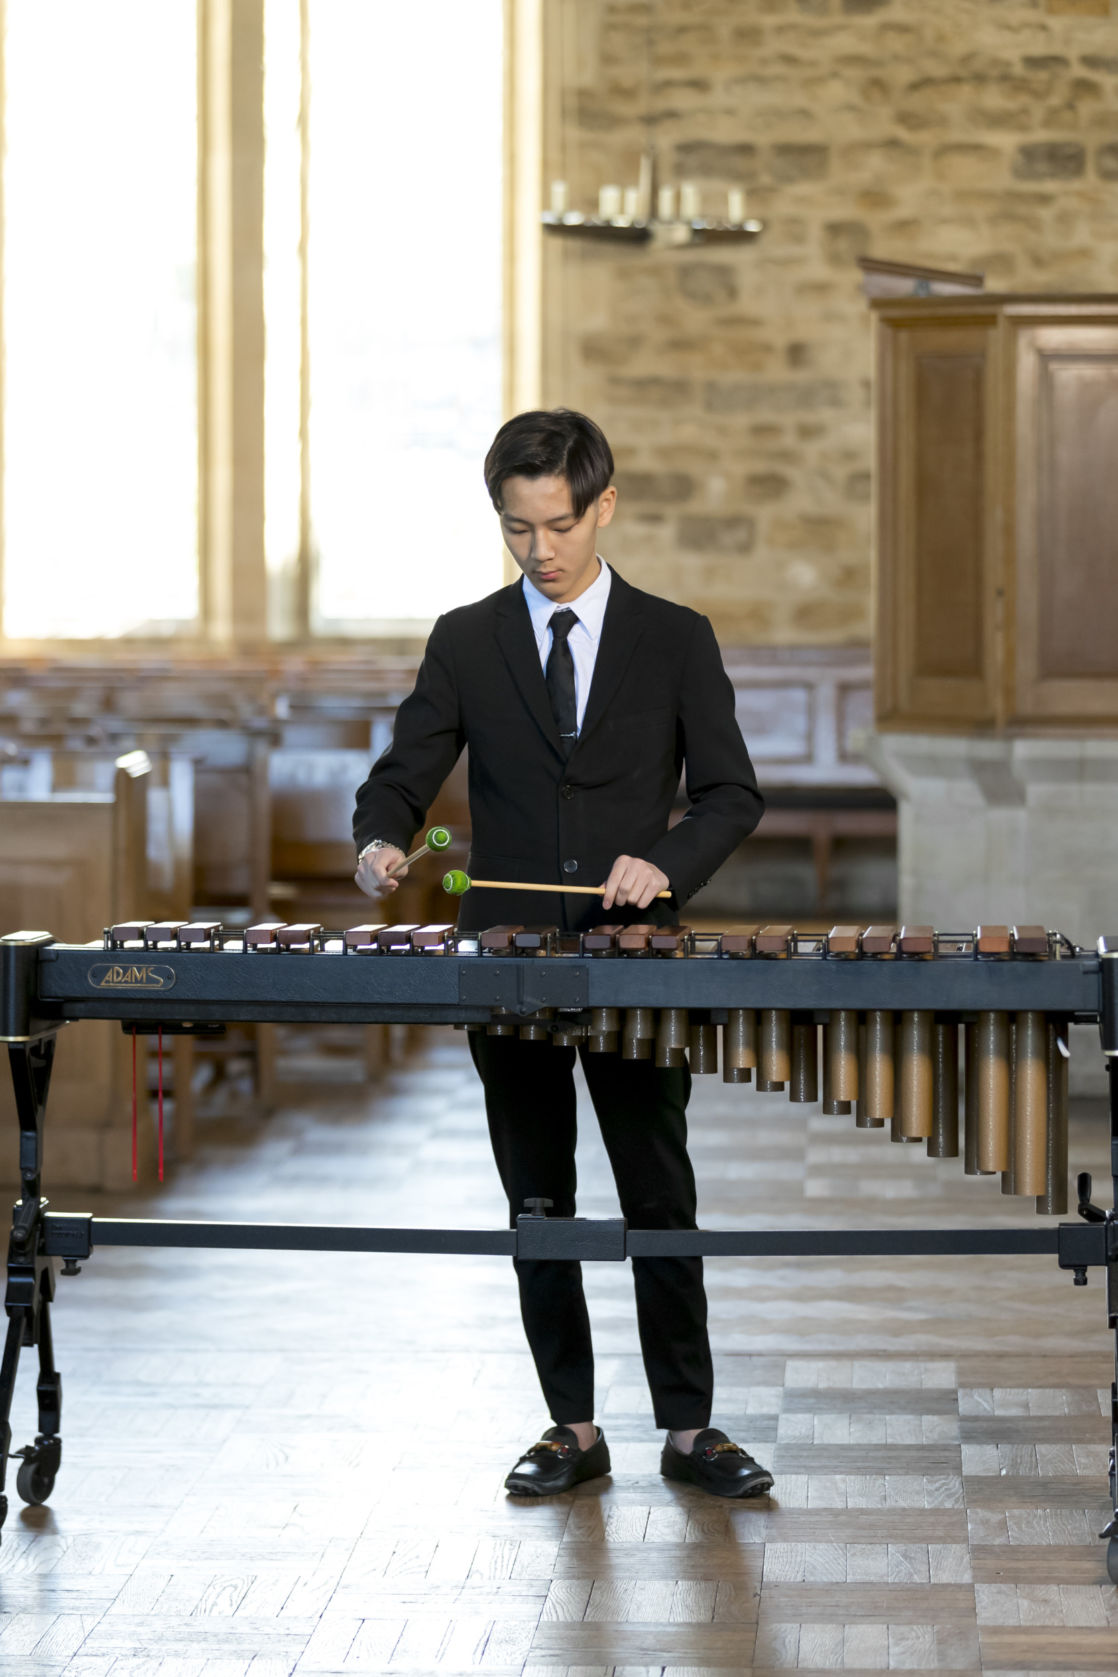 wycliffe student playing an instrument